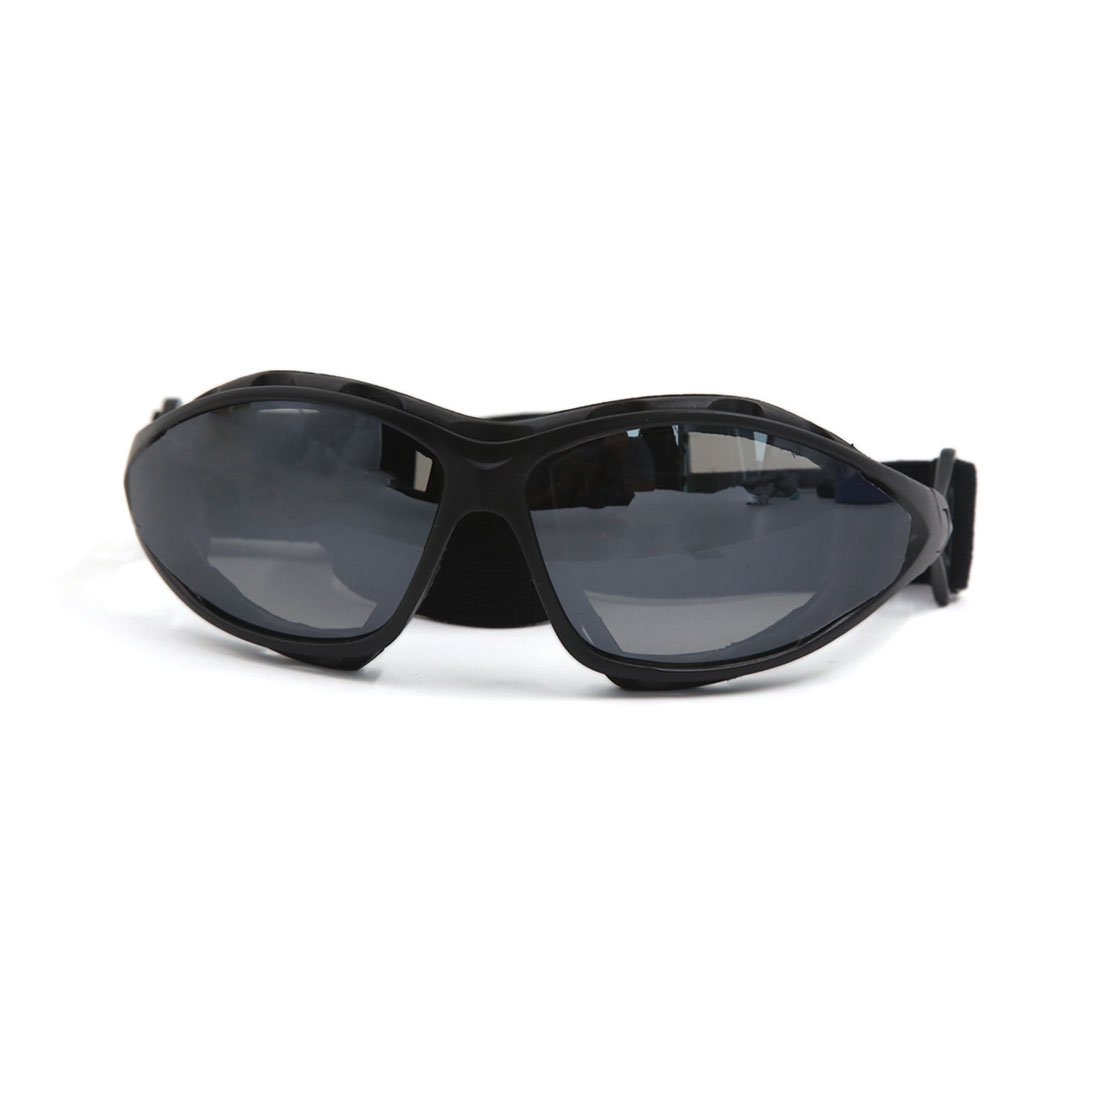 Gray Lens Motorcycle Bike Riding Dust-proof Windproof Goggles Eyewear Glasses